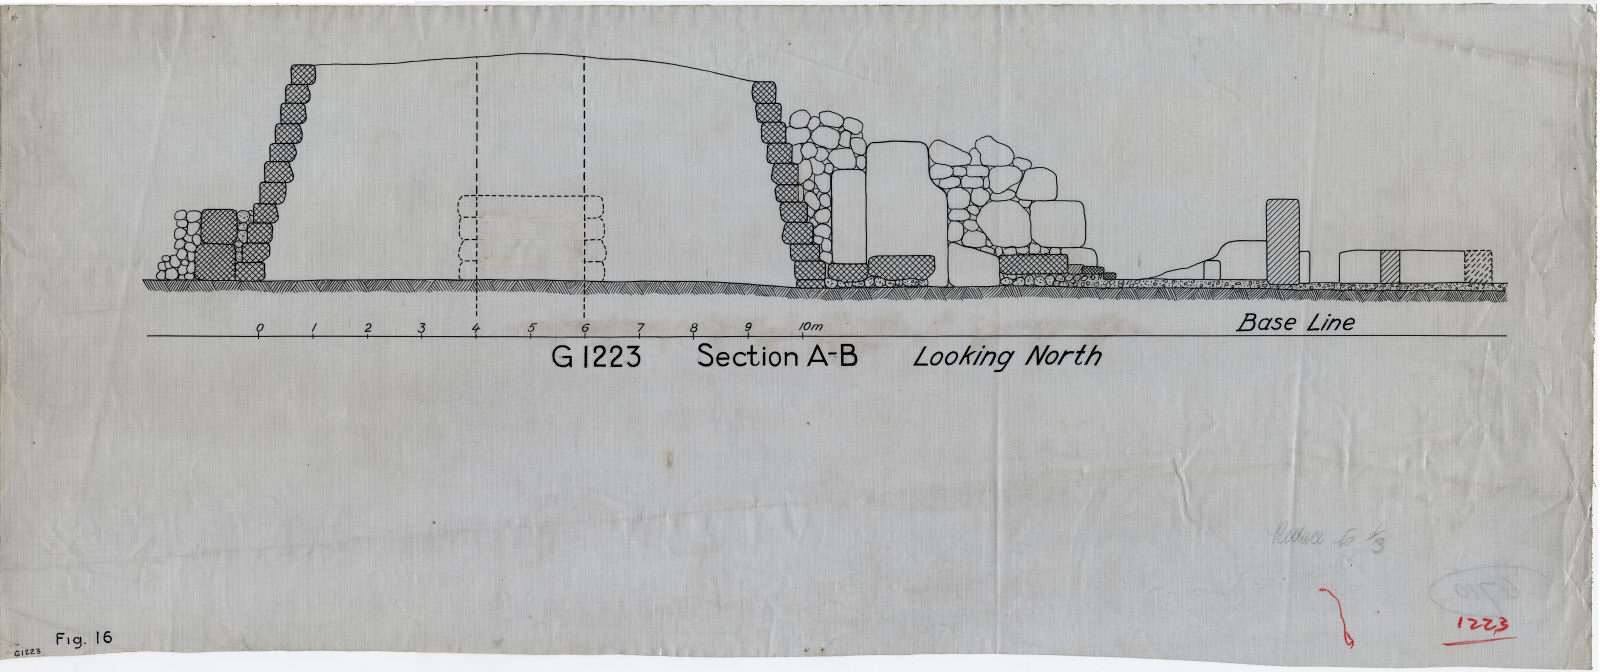 Maps and plans: Section of G 1223